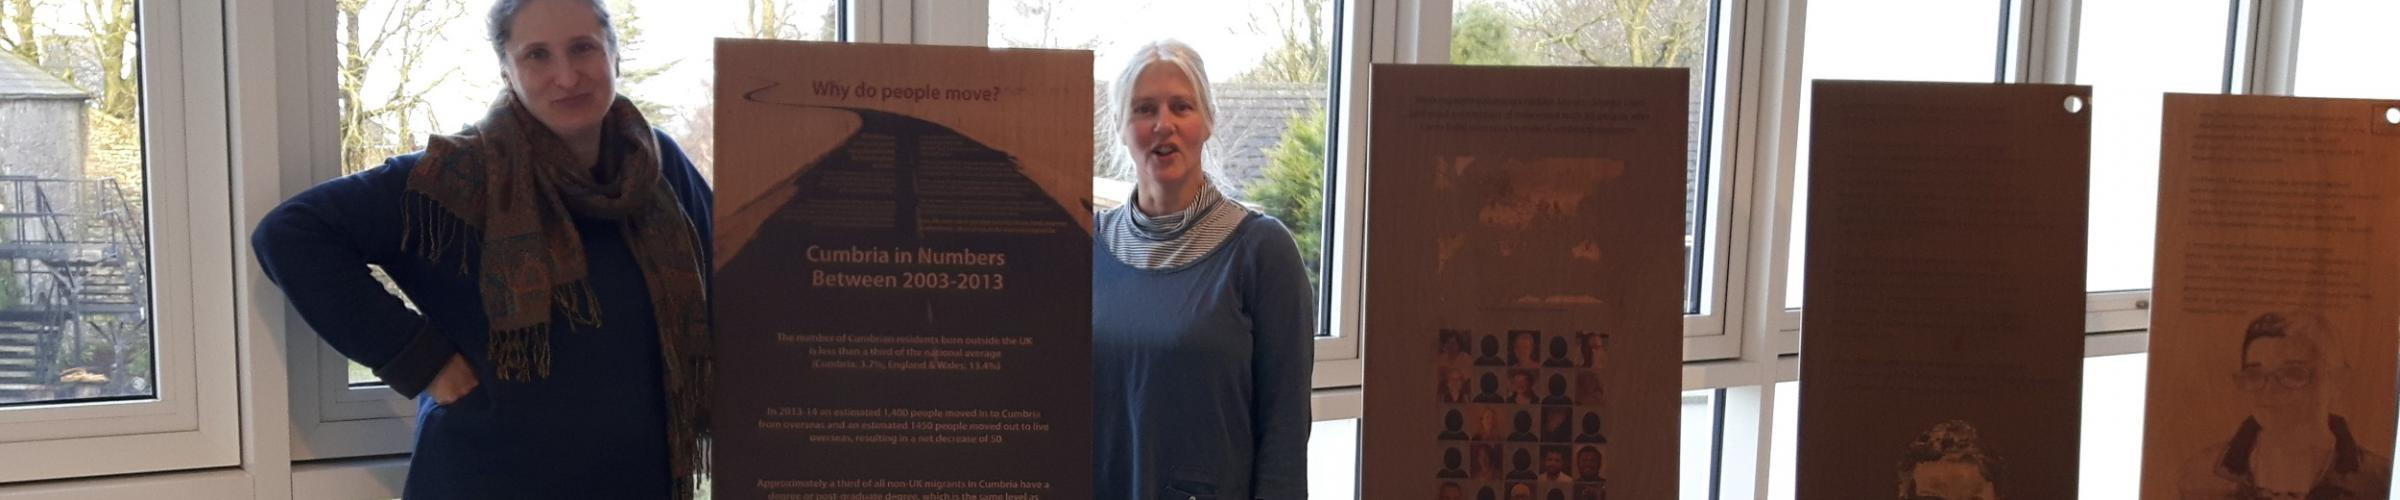 Hidden Stories community exhibition and workshop comes to Whitehaven and Millom